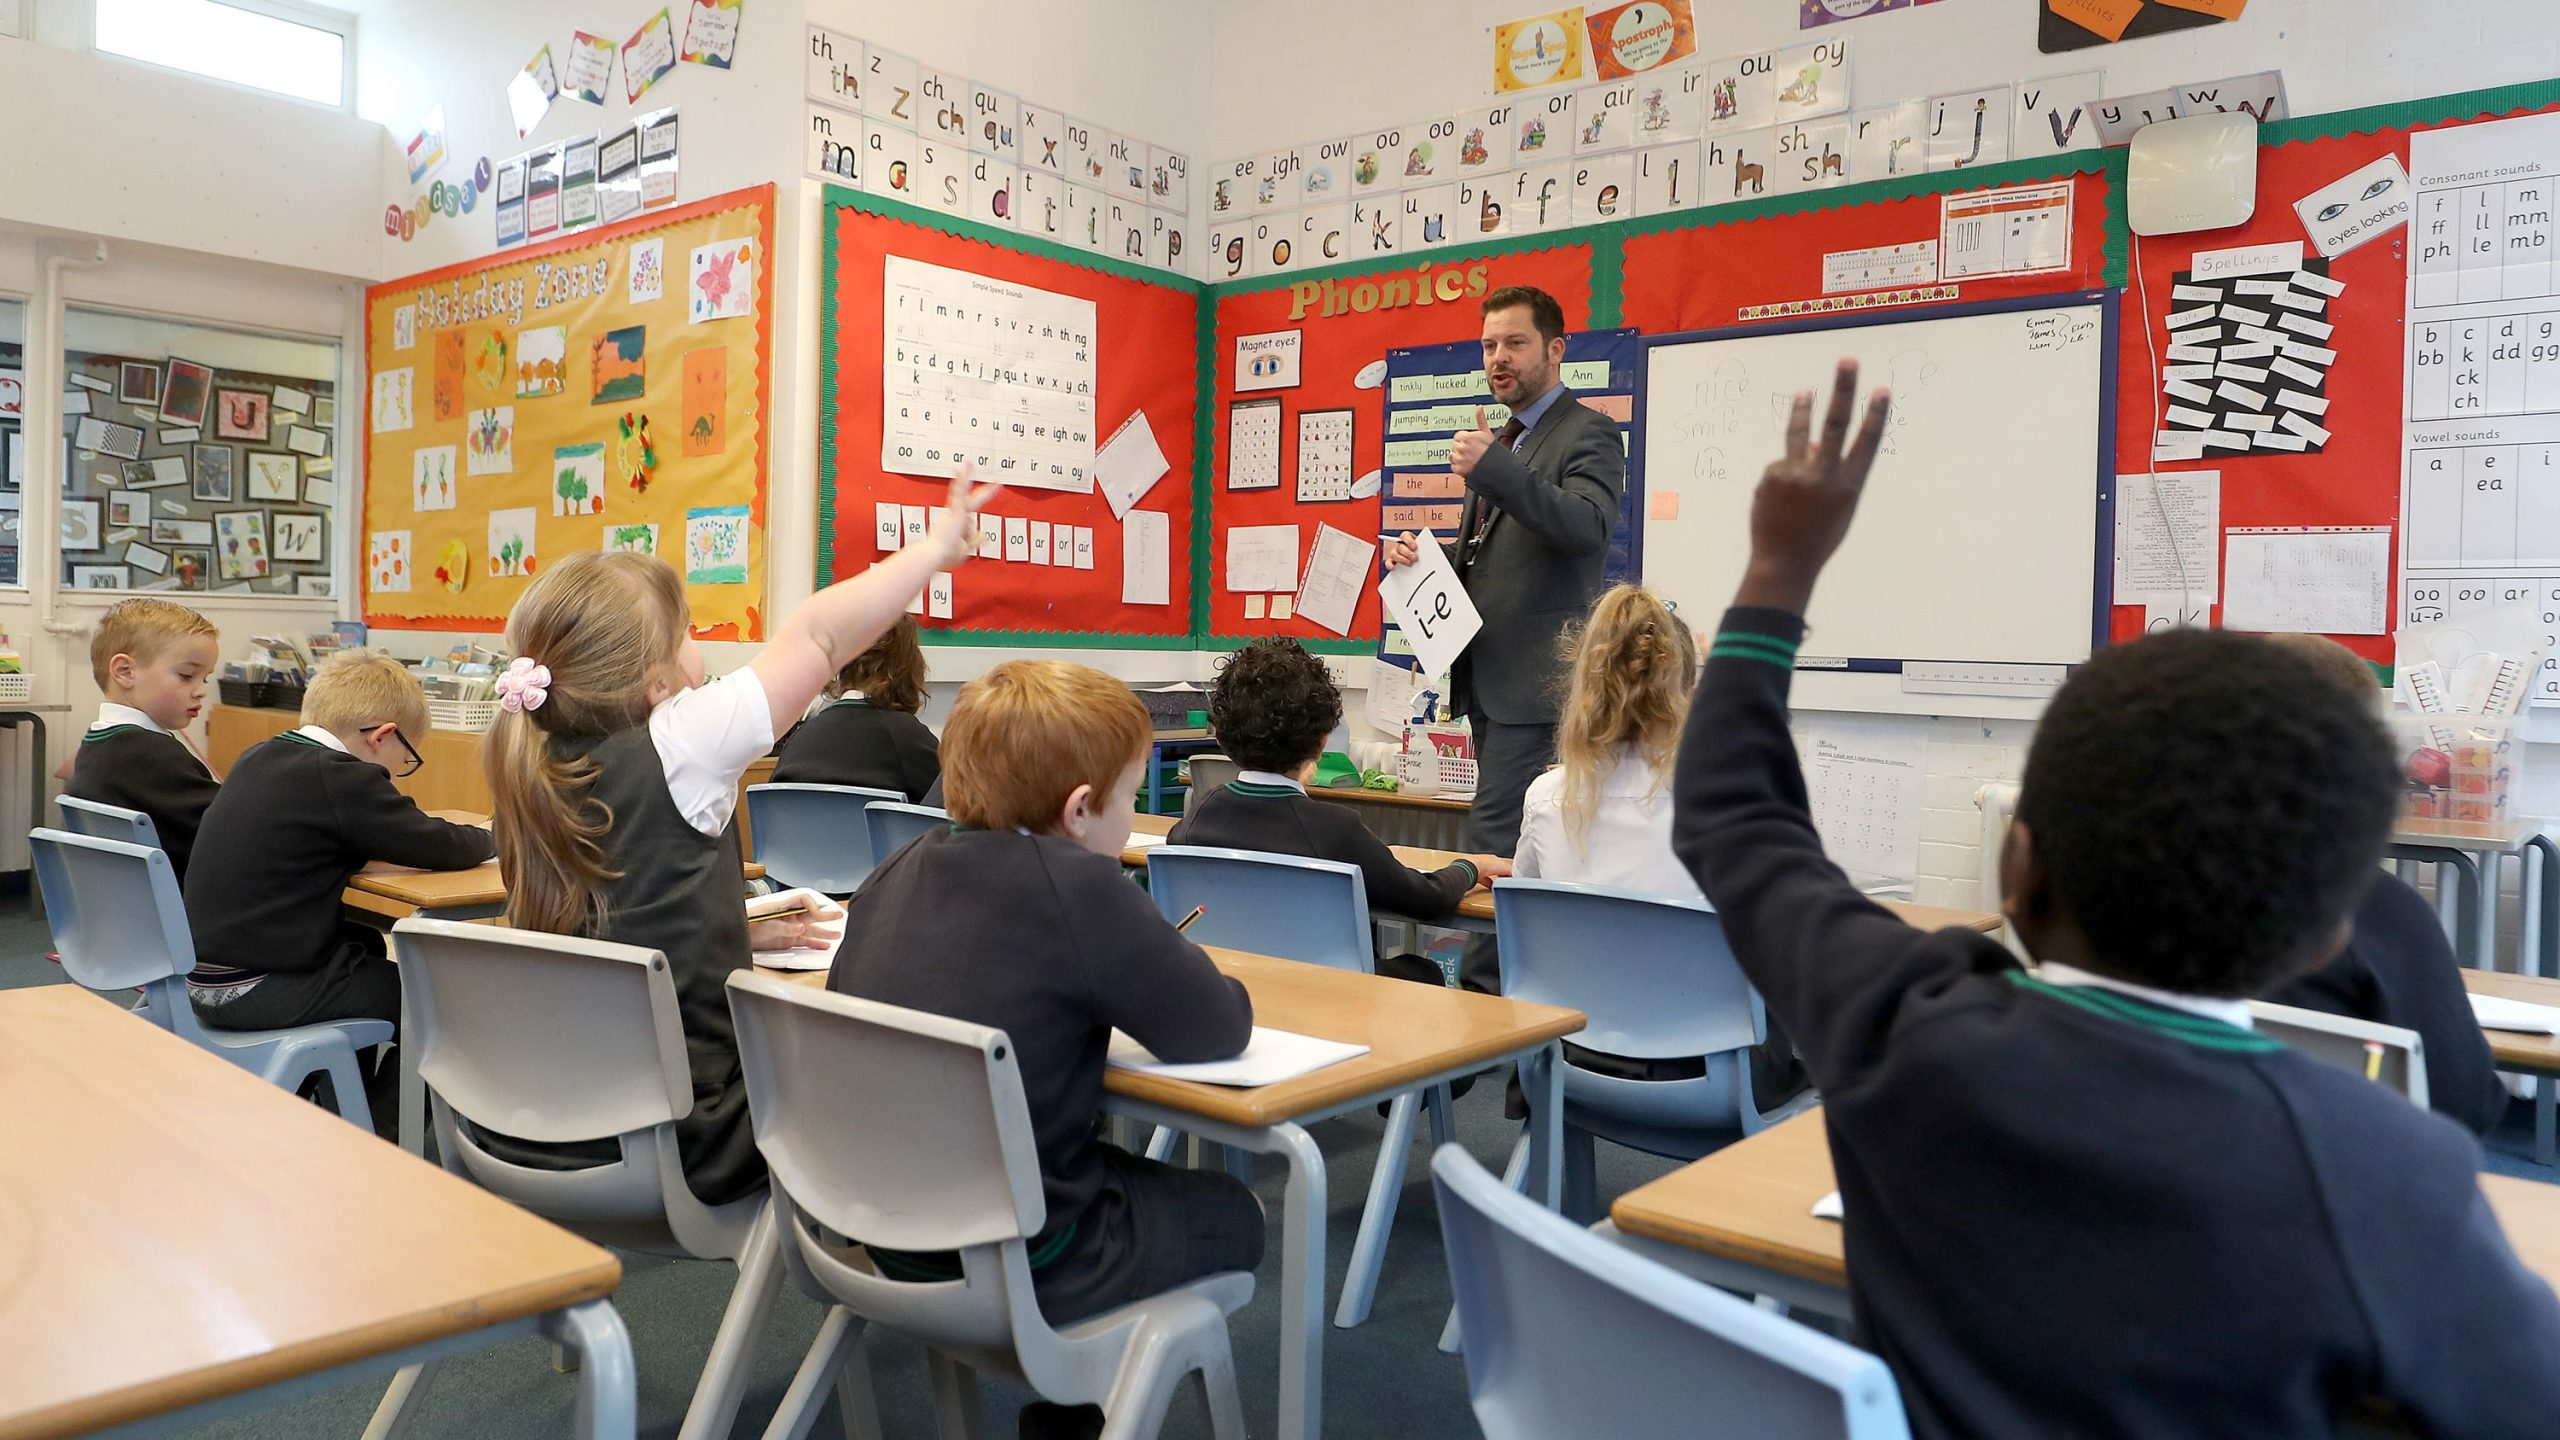 Read more about the article Poorest schools suffered funding cut under Tory reforms says watchdog